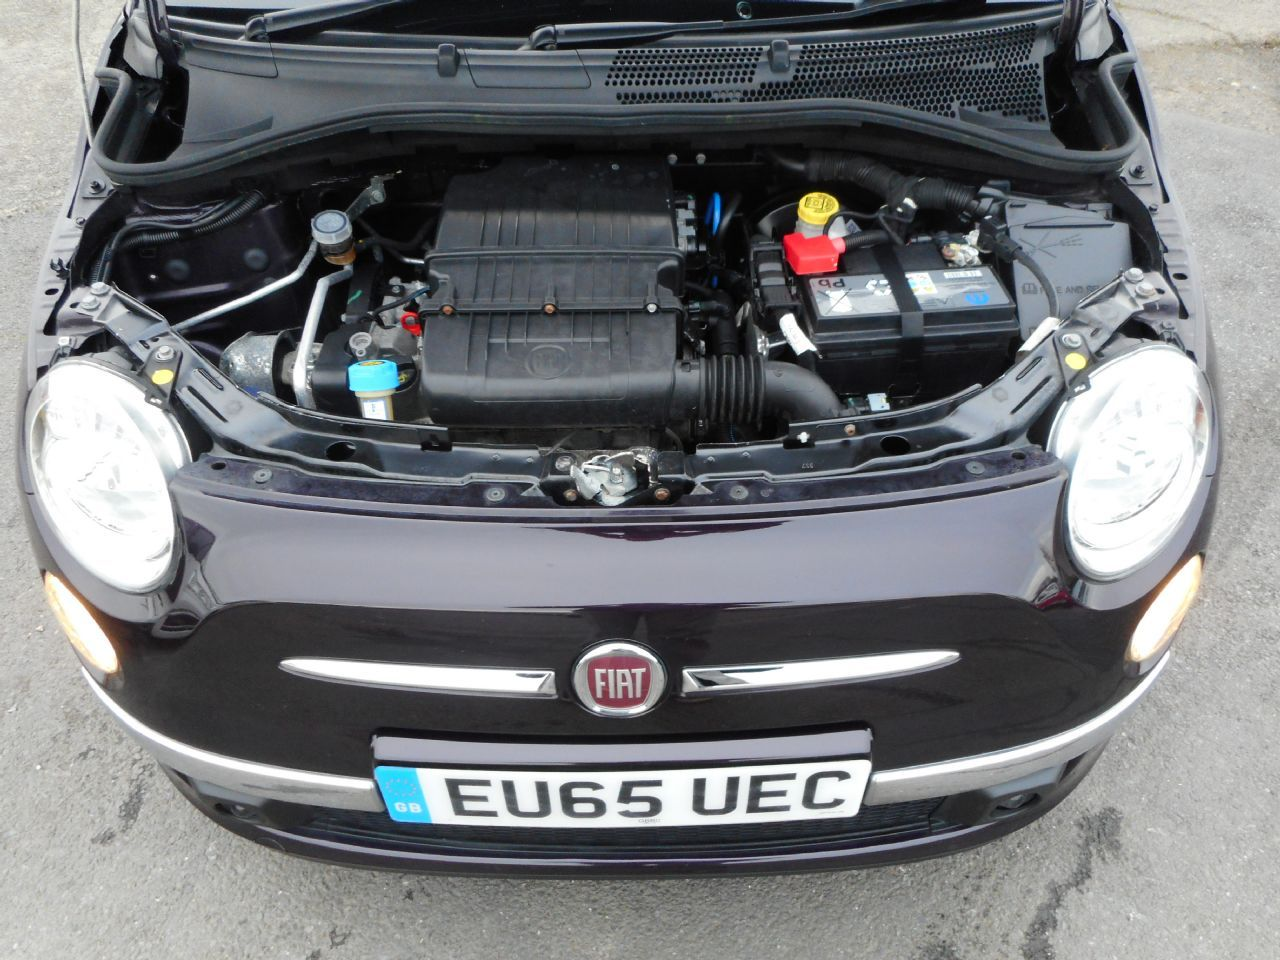 FIAT 500 1.2i Lounge S/S - Picture 10